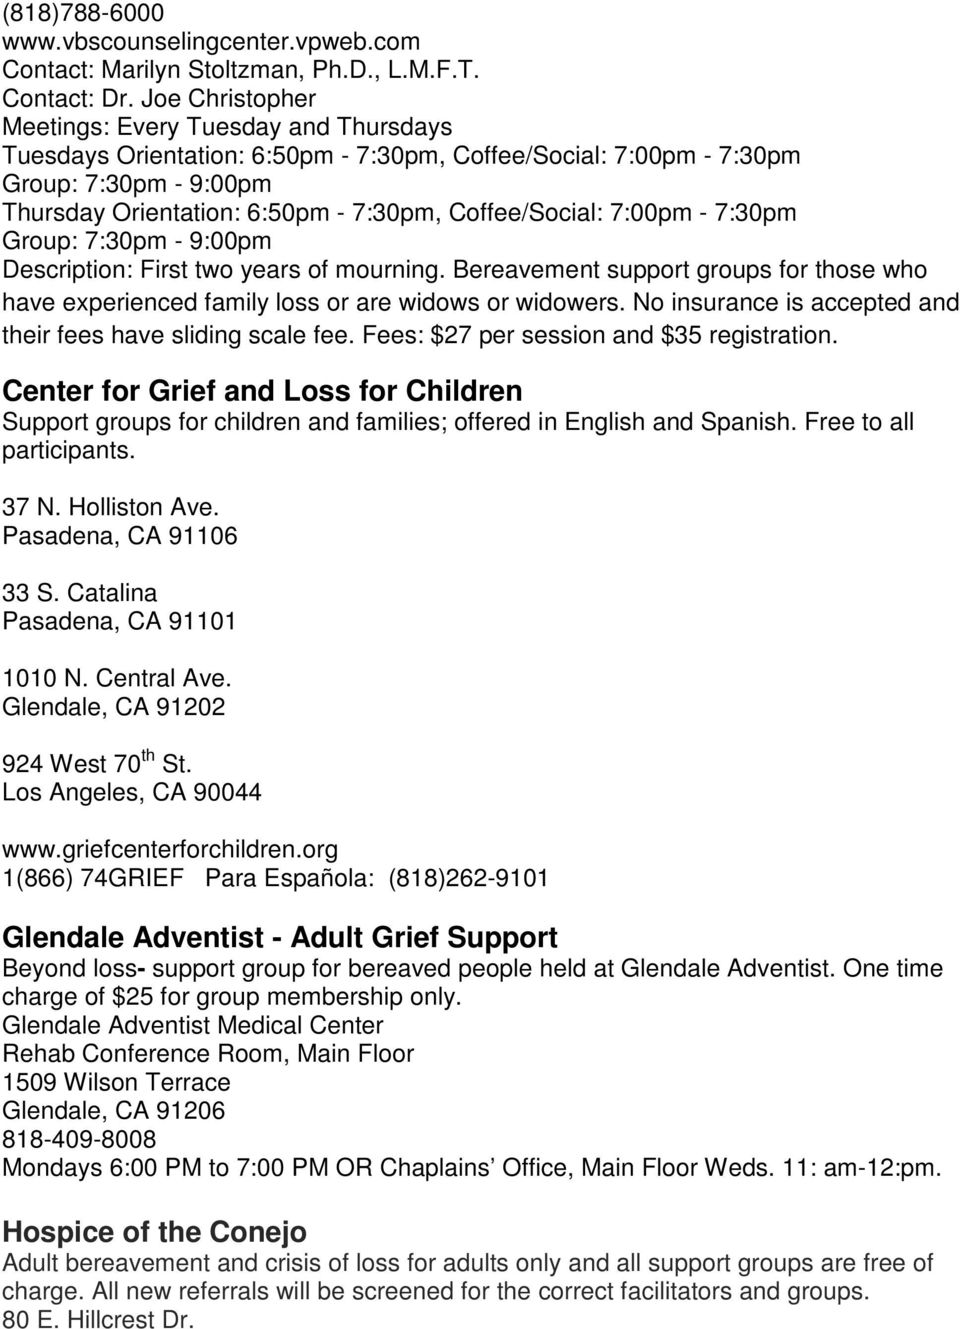 Bereavement resources in los angeles county pdf for 1509 wilson terrace glendale ca 91206